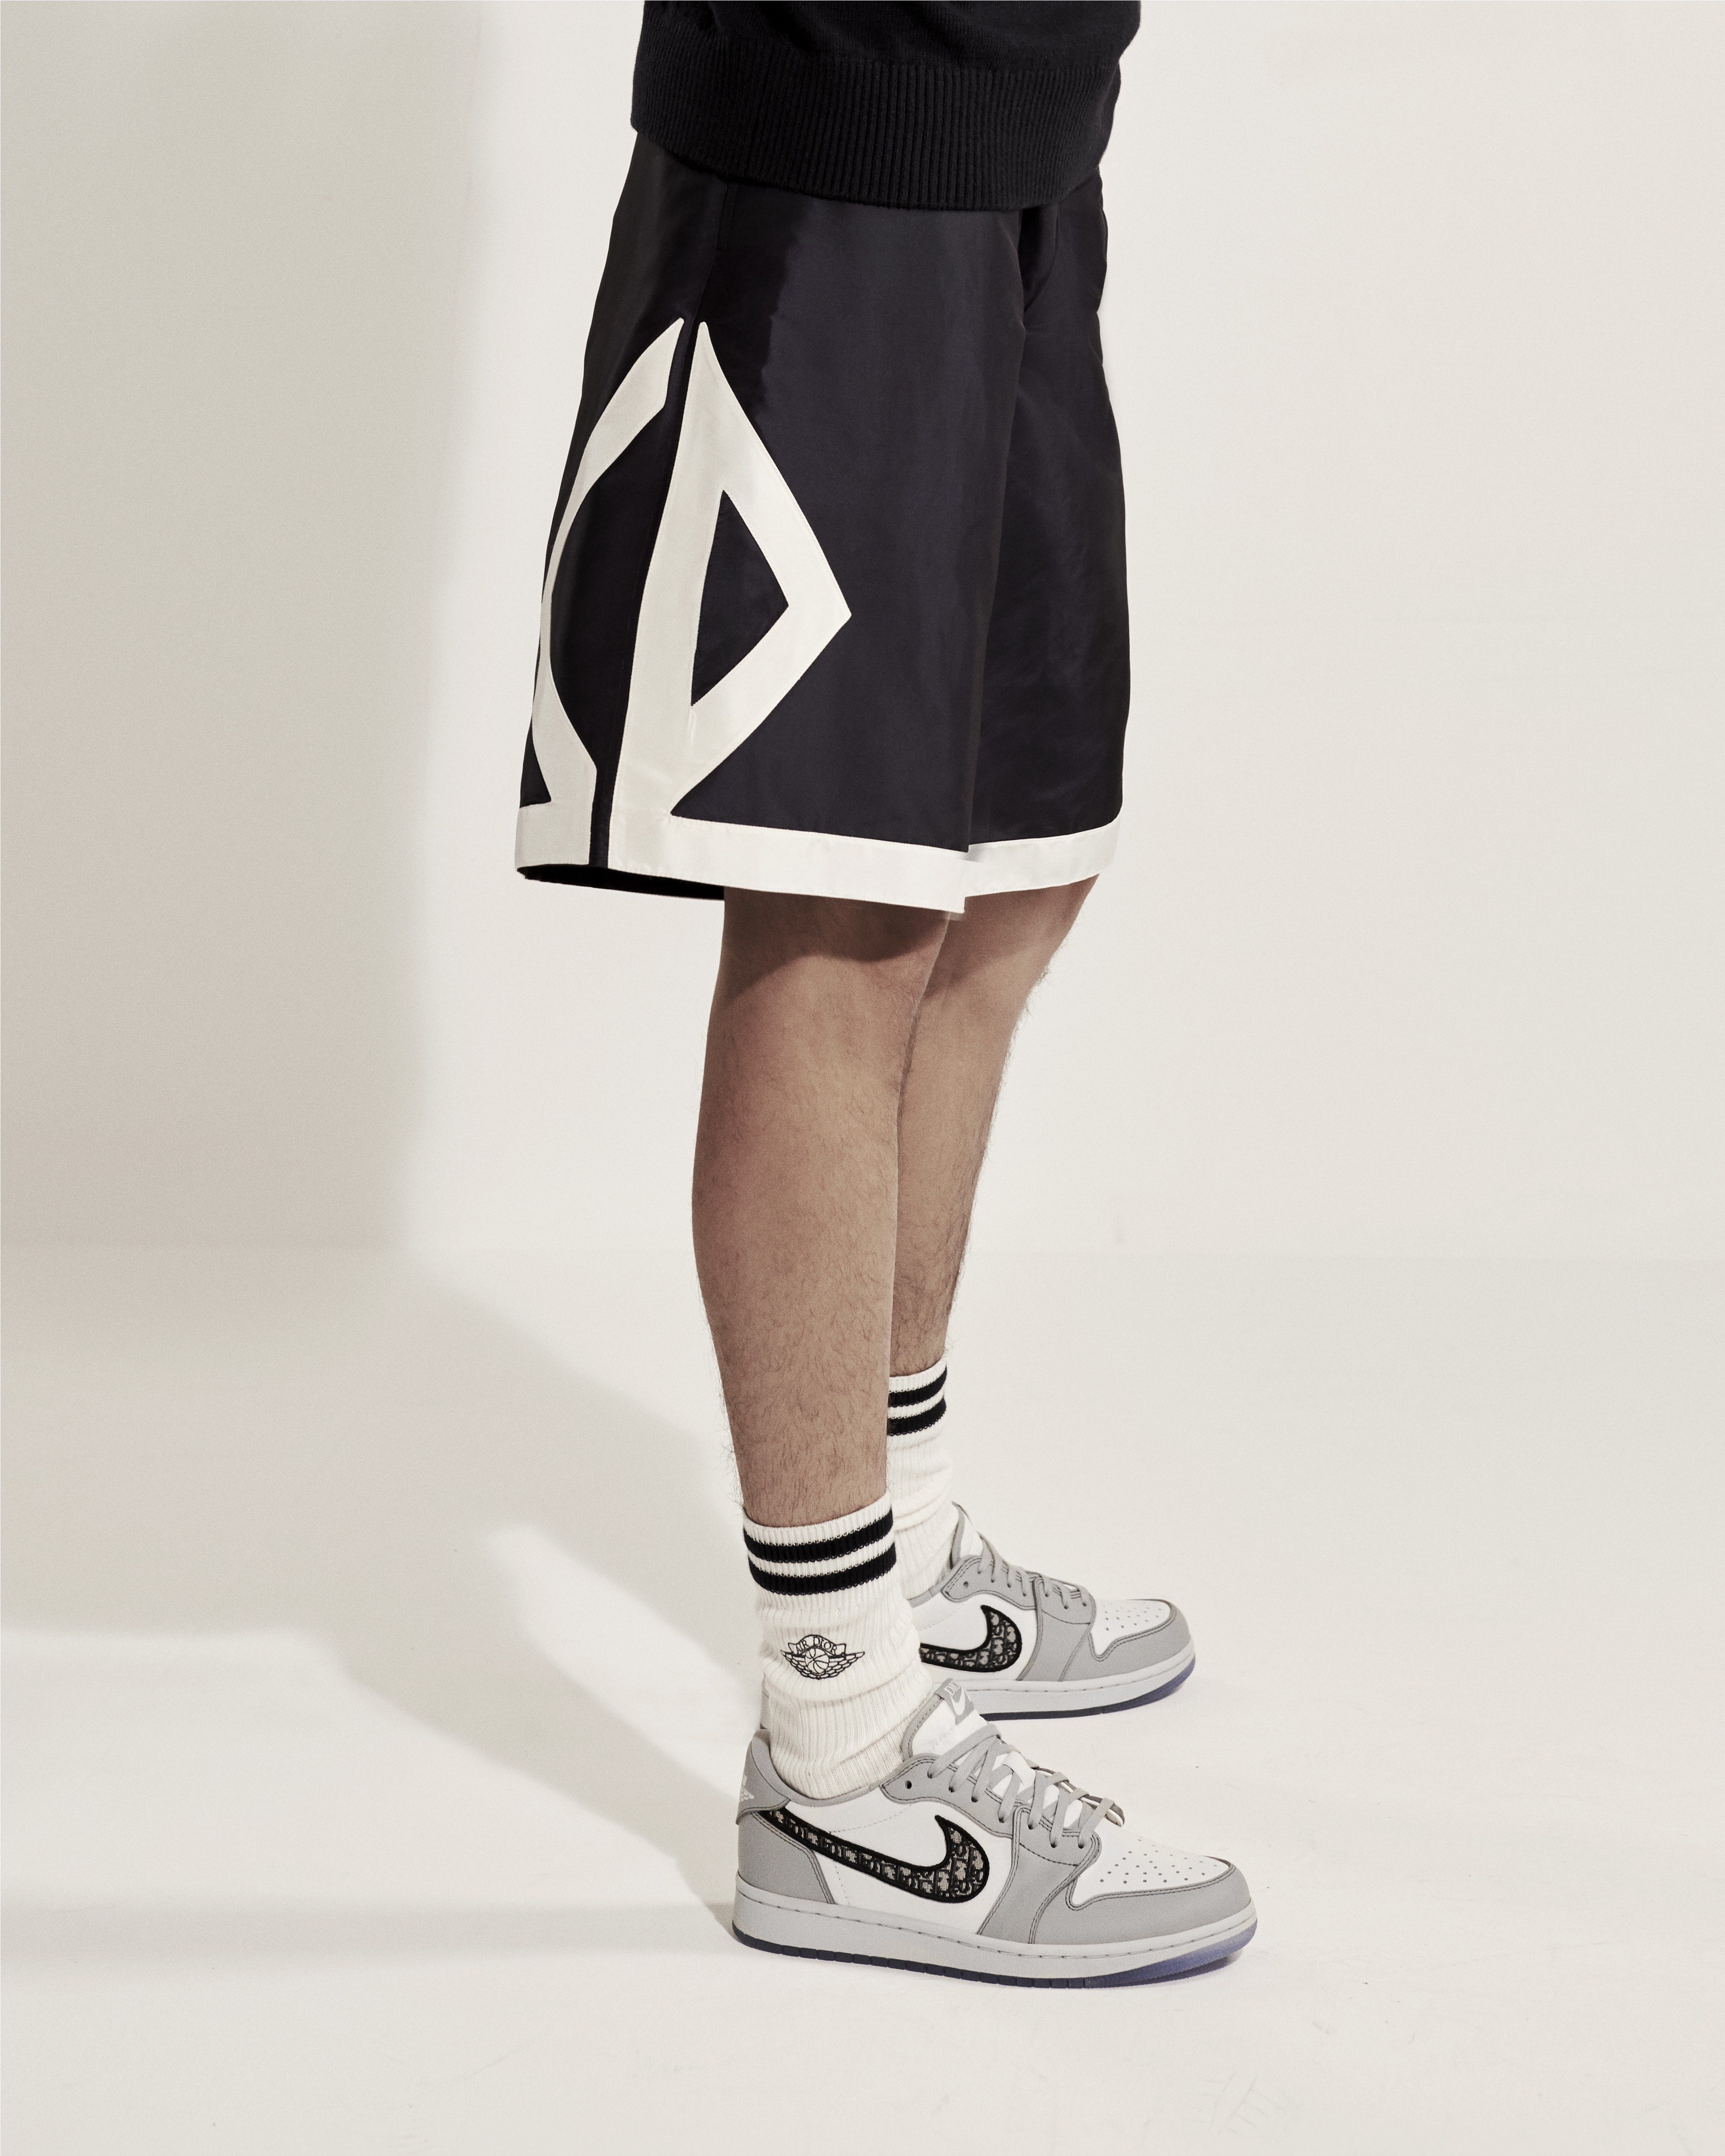 Dior Reveals New Sneaker and Capsule Collection - Dior x Air ...